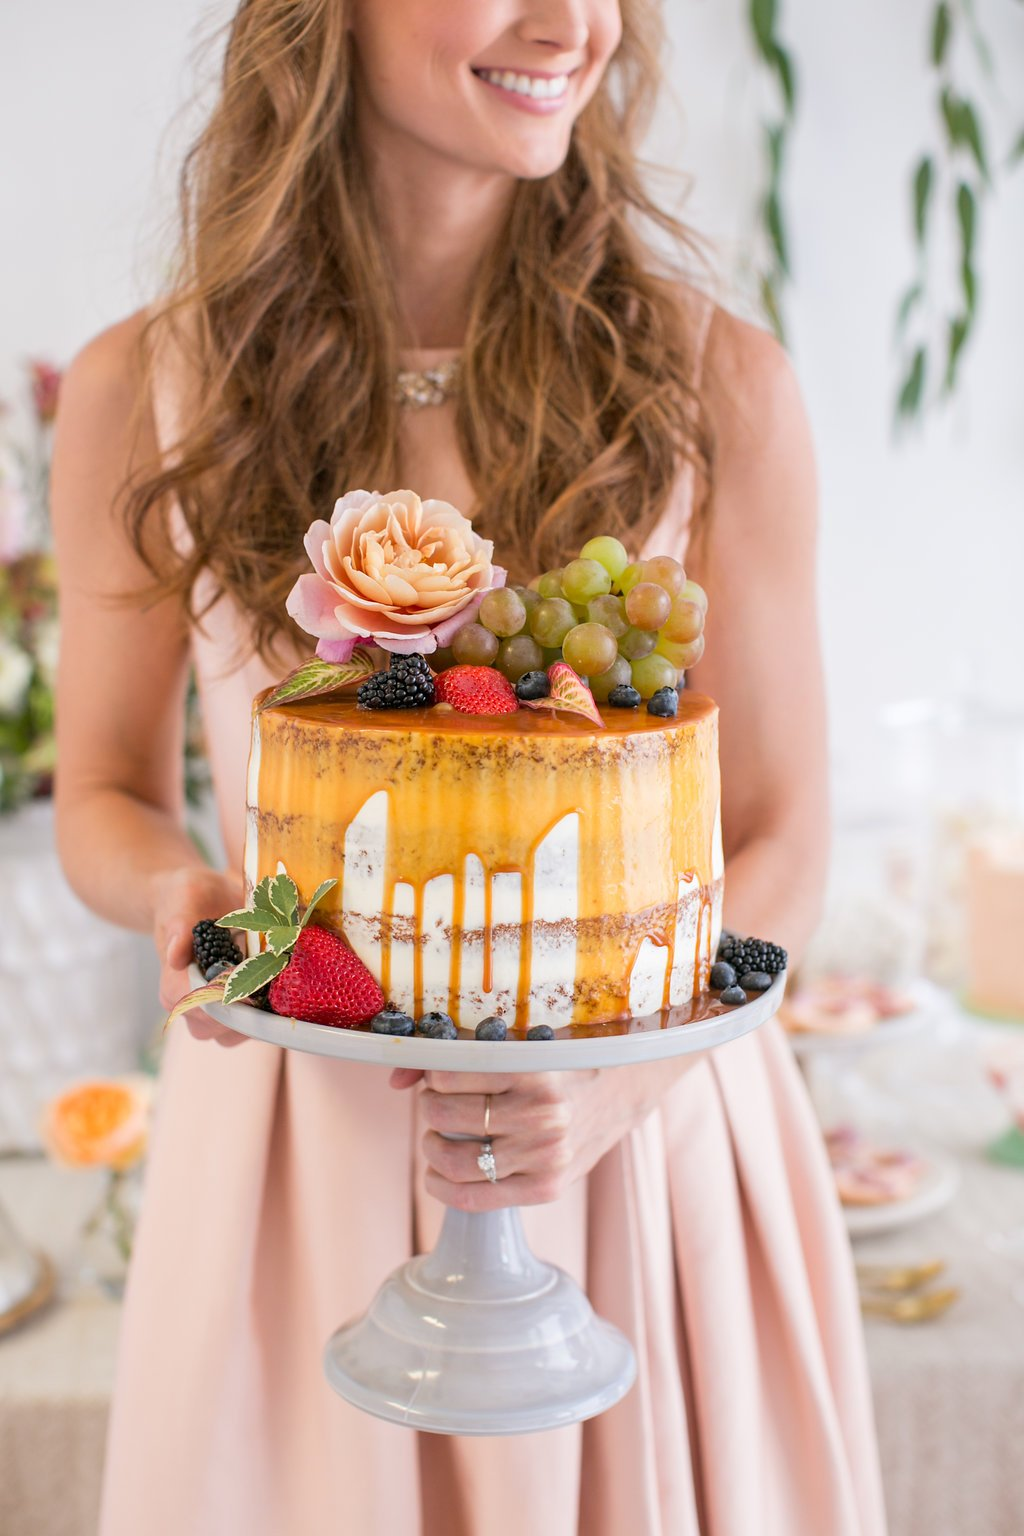 Bride holding caramel drizzled wedding cake at spring bridal shower